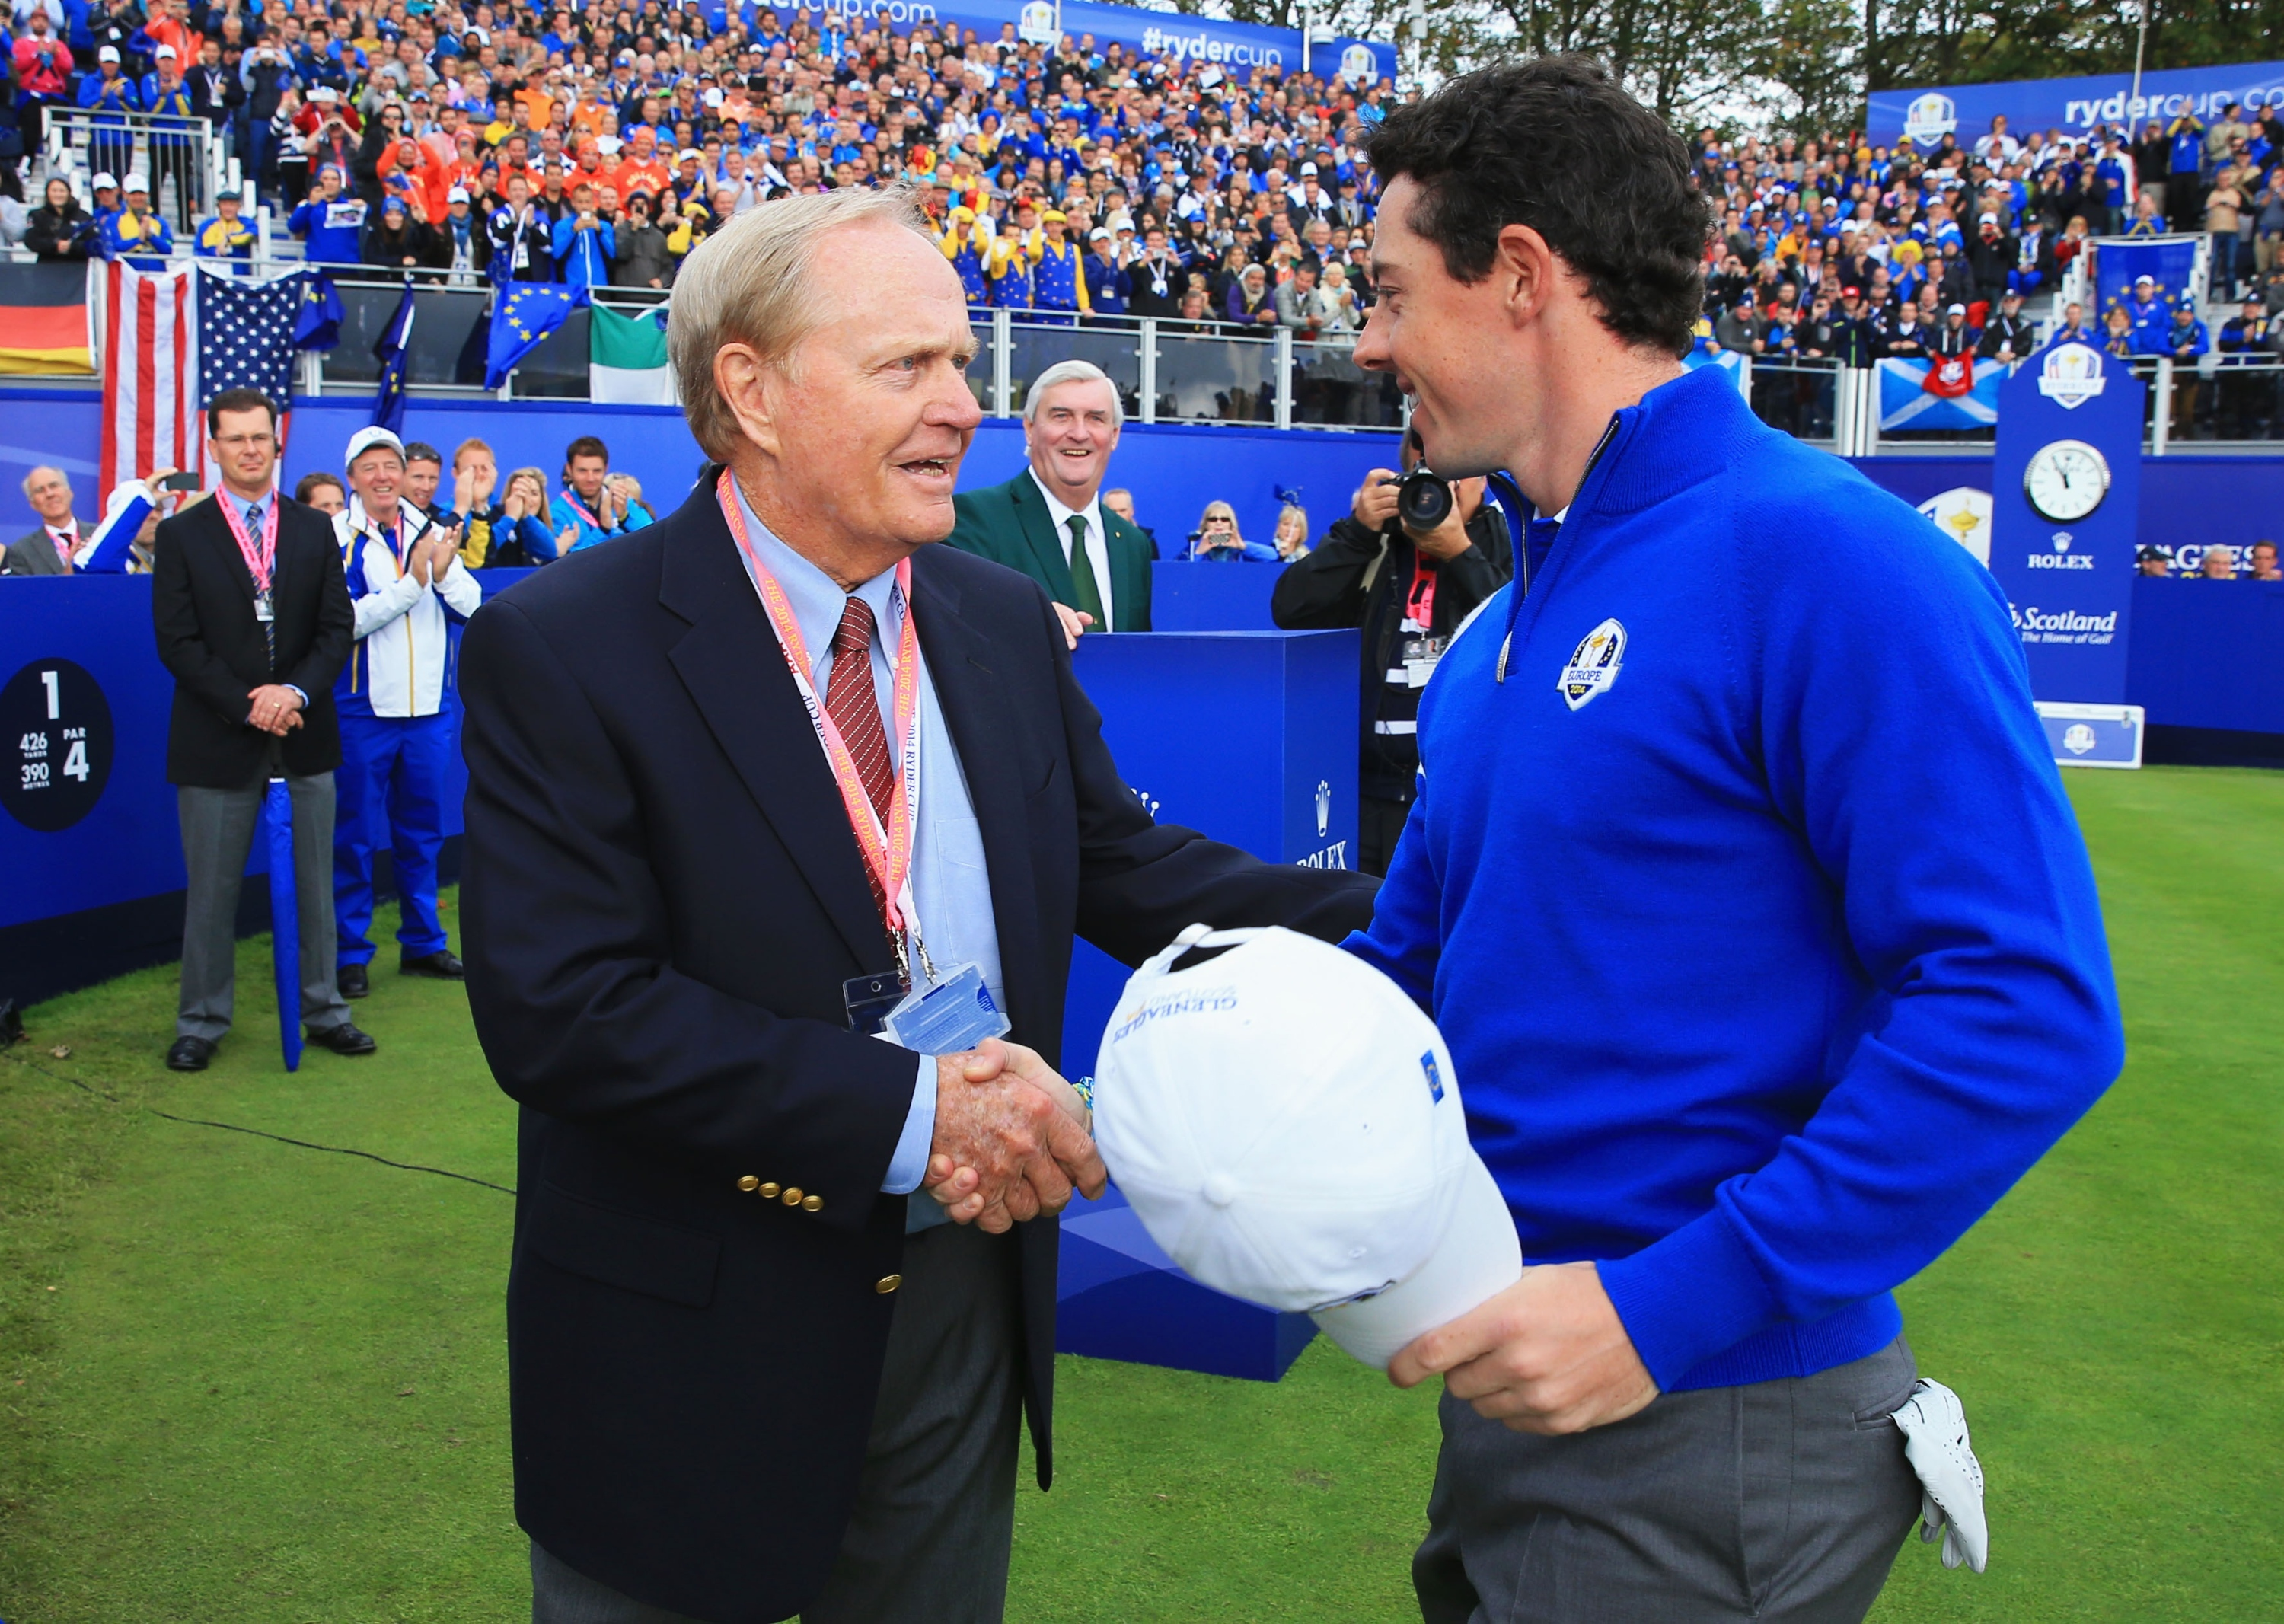 Rory McIlroy shakes hands with Jack Nicklaus. (Getty Images)